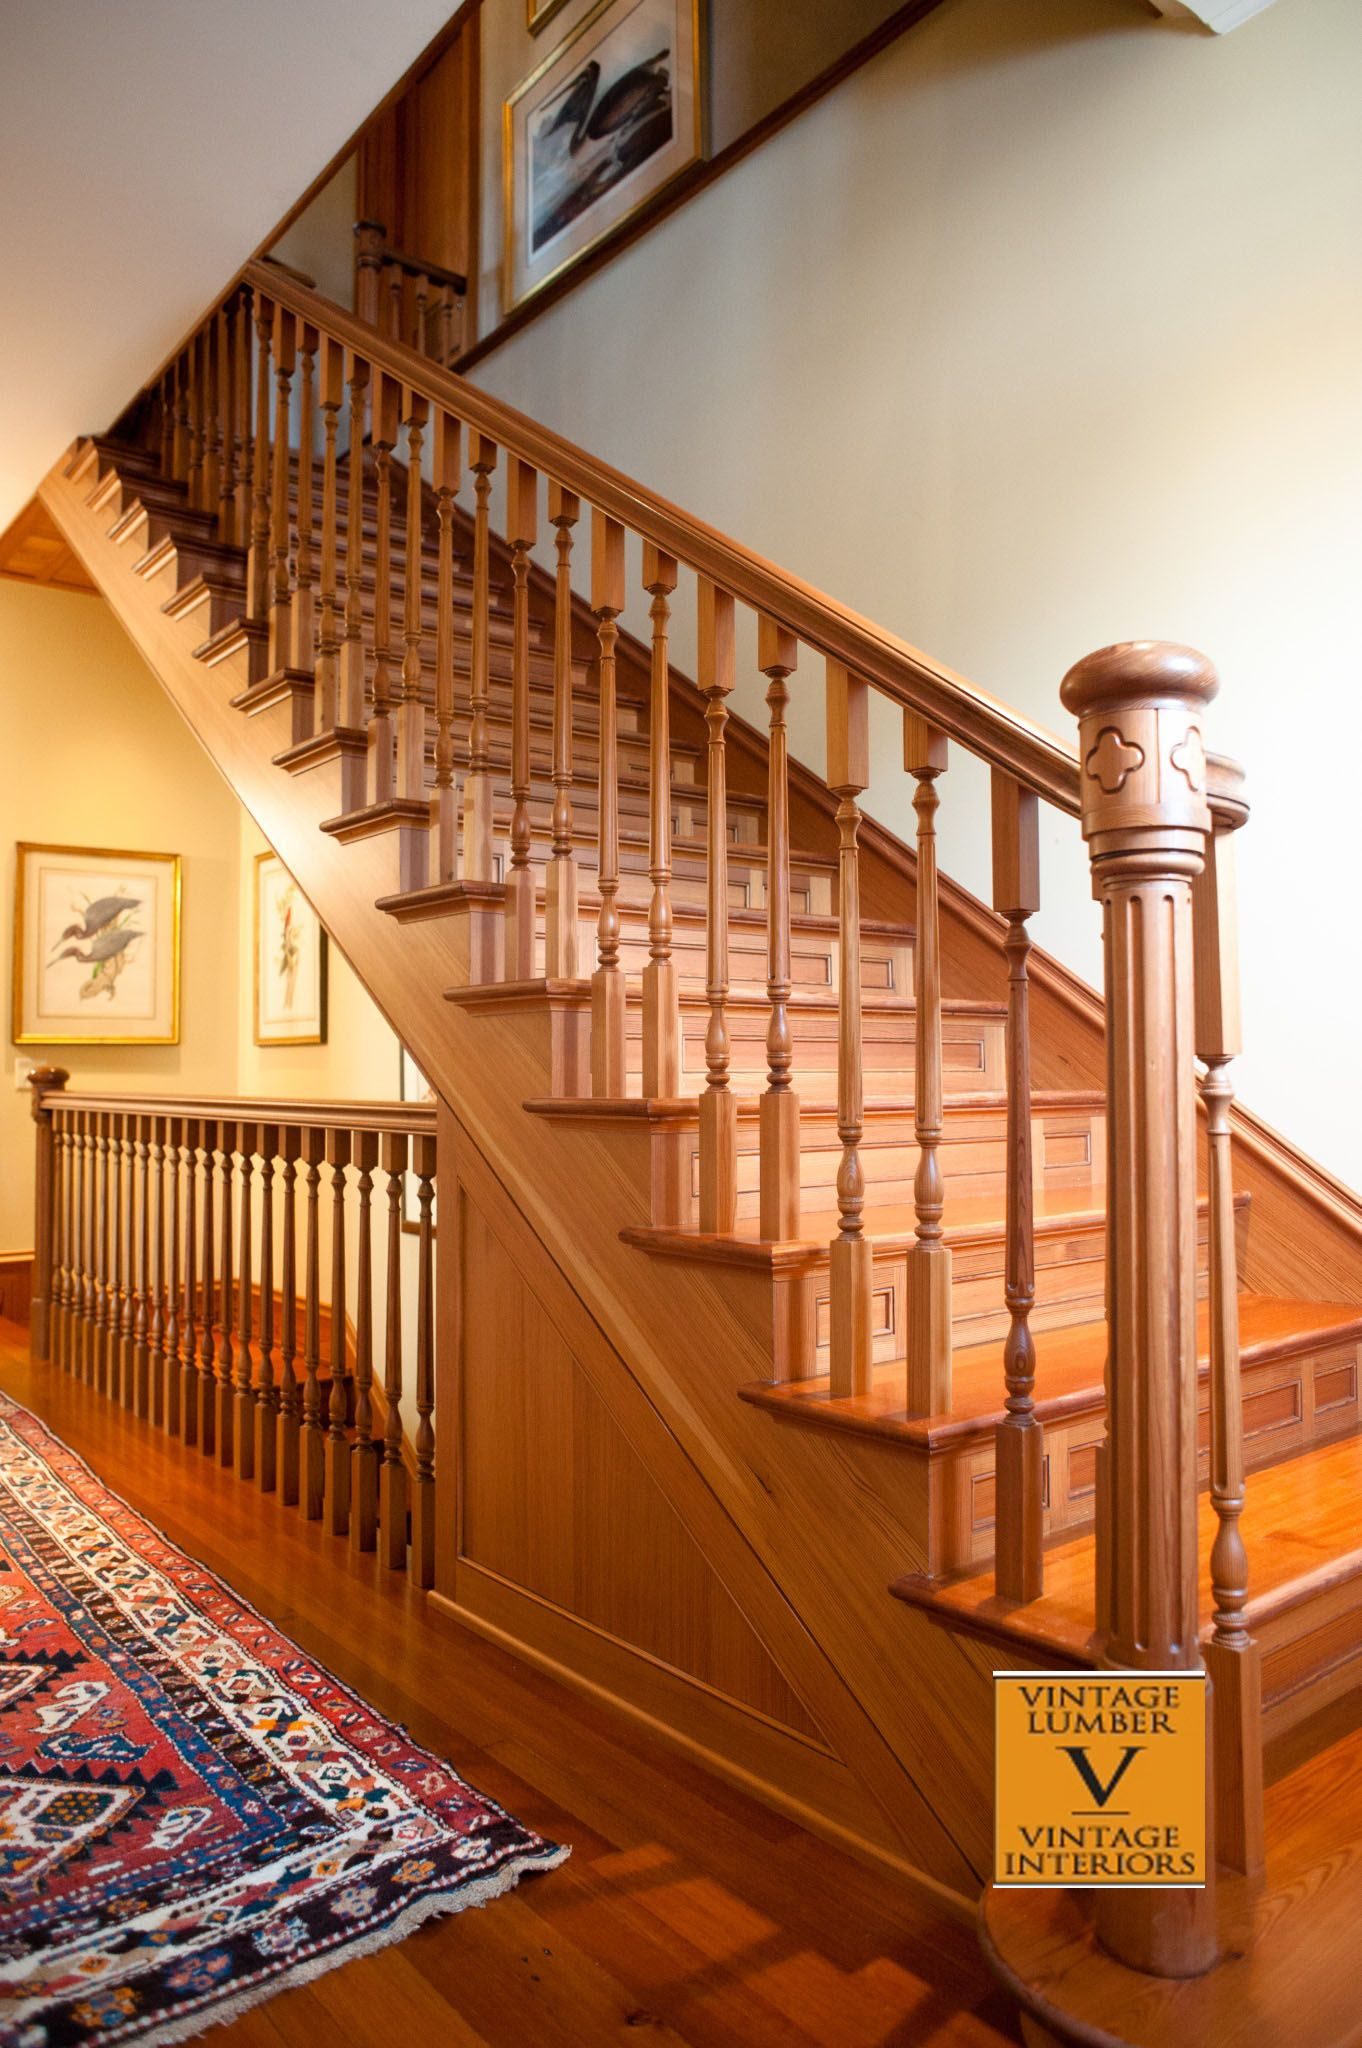 Gallery Photos   Wood stairs, How to antique wood, Stairs